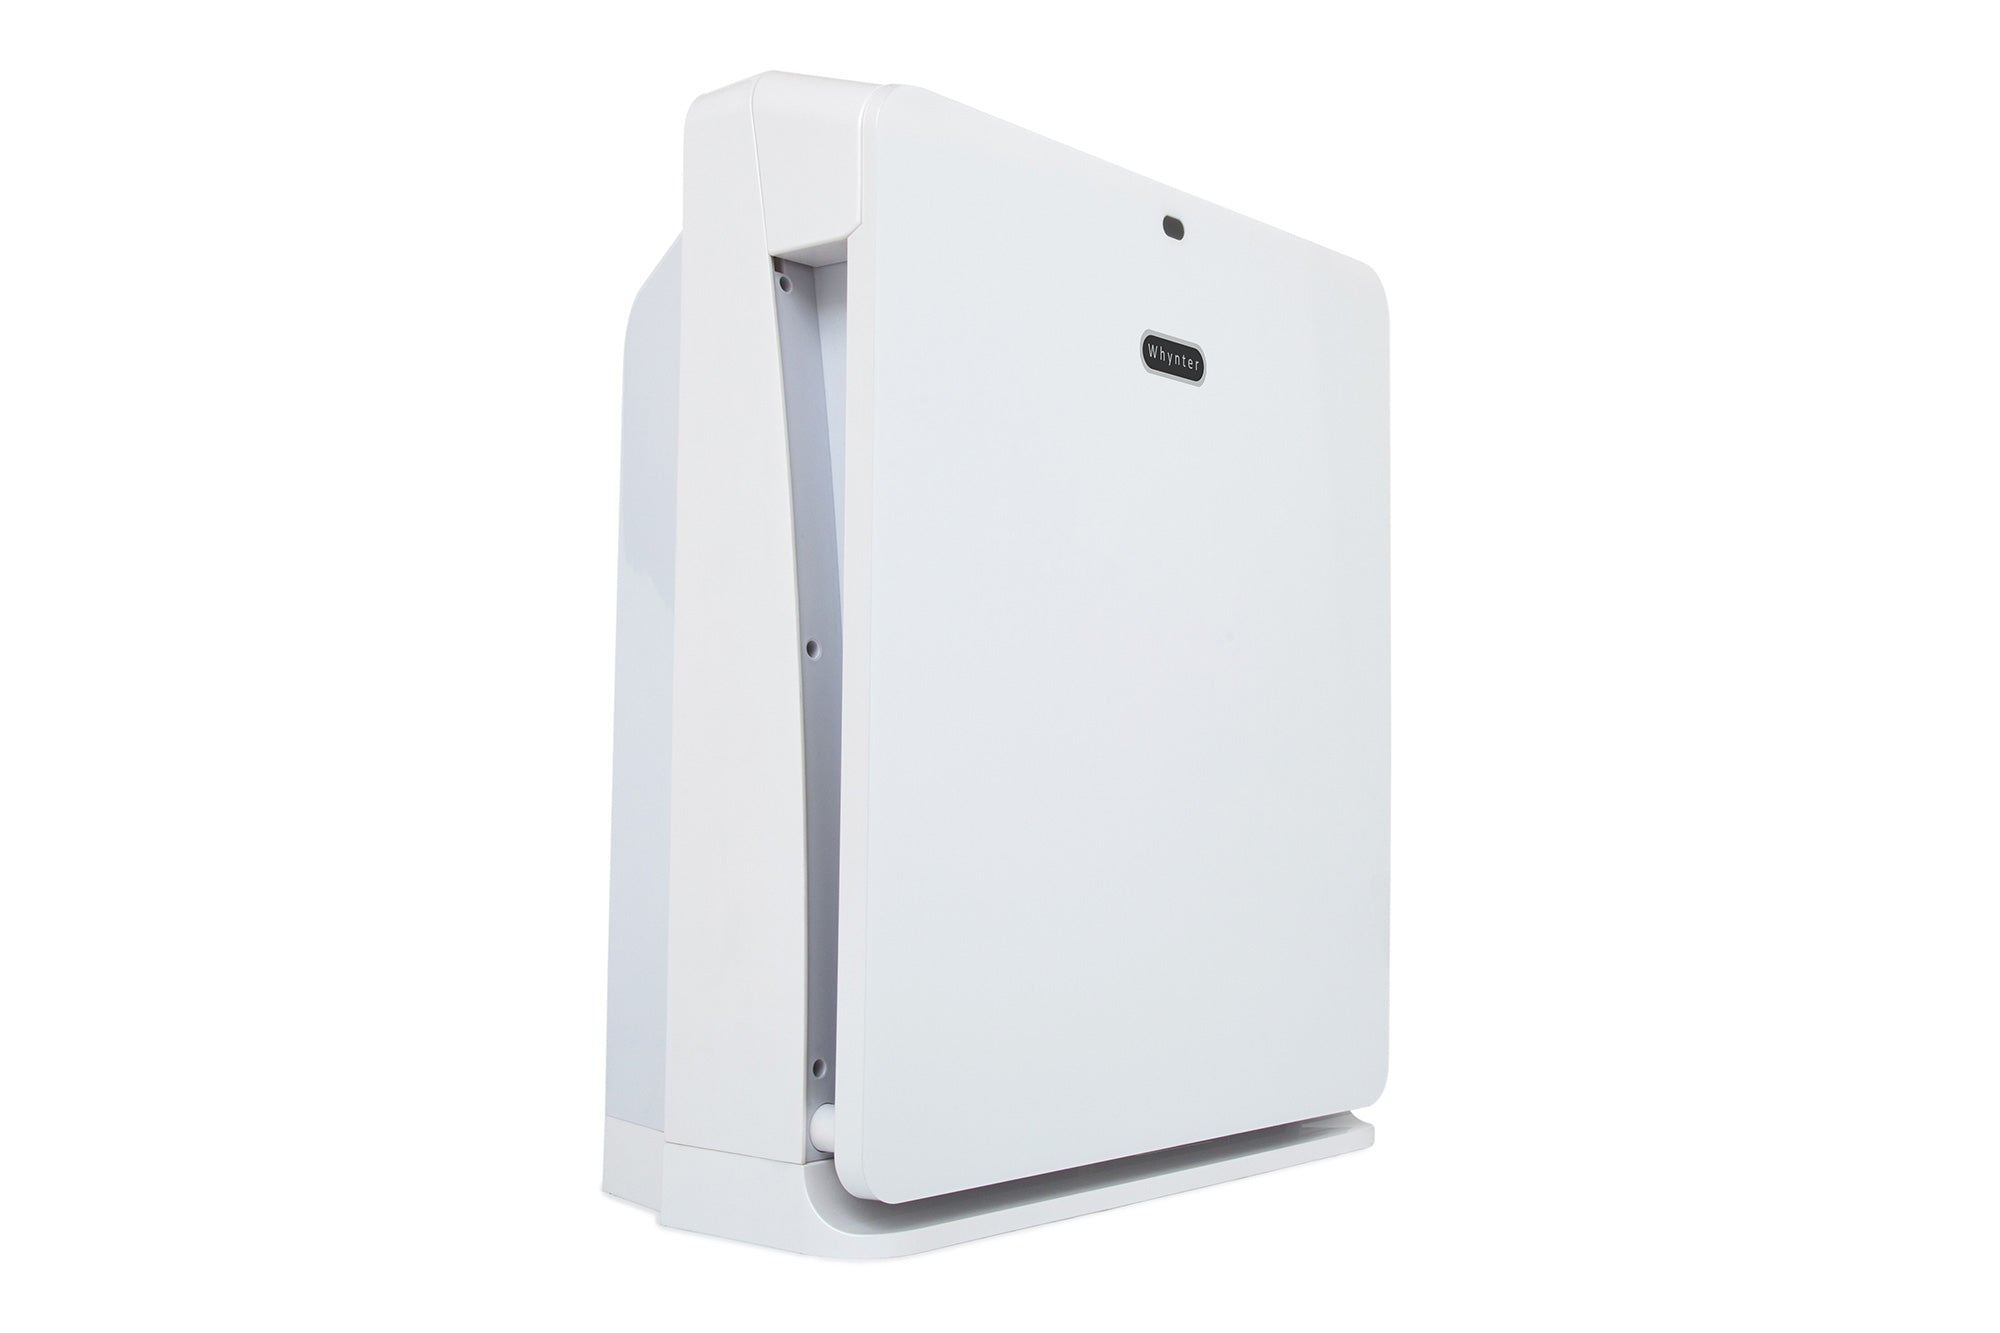 AirPurifier Whynter AFR-425-PW EcoPure HEPA System Air Purifier – Pearl